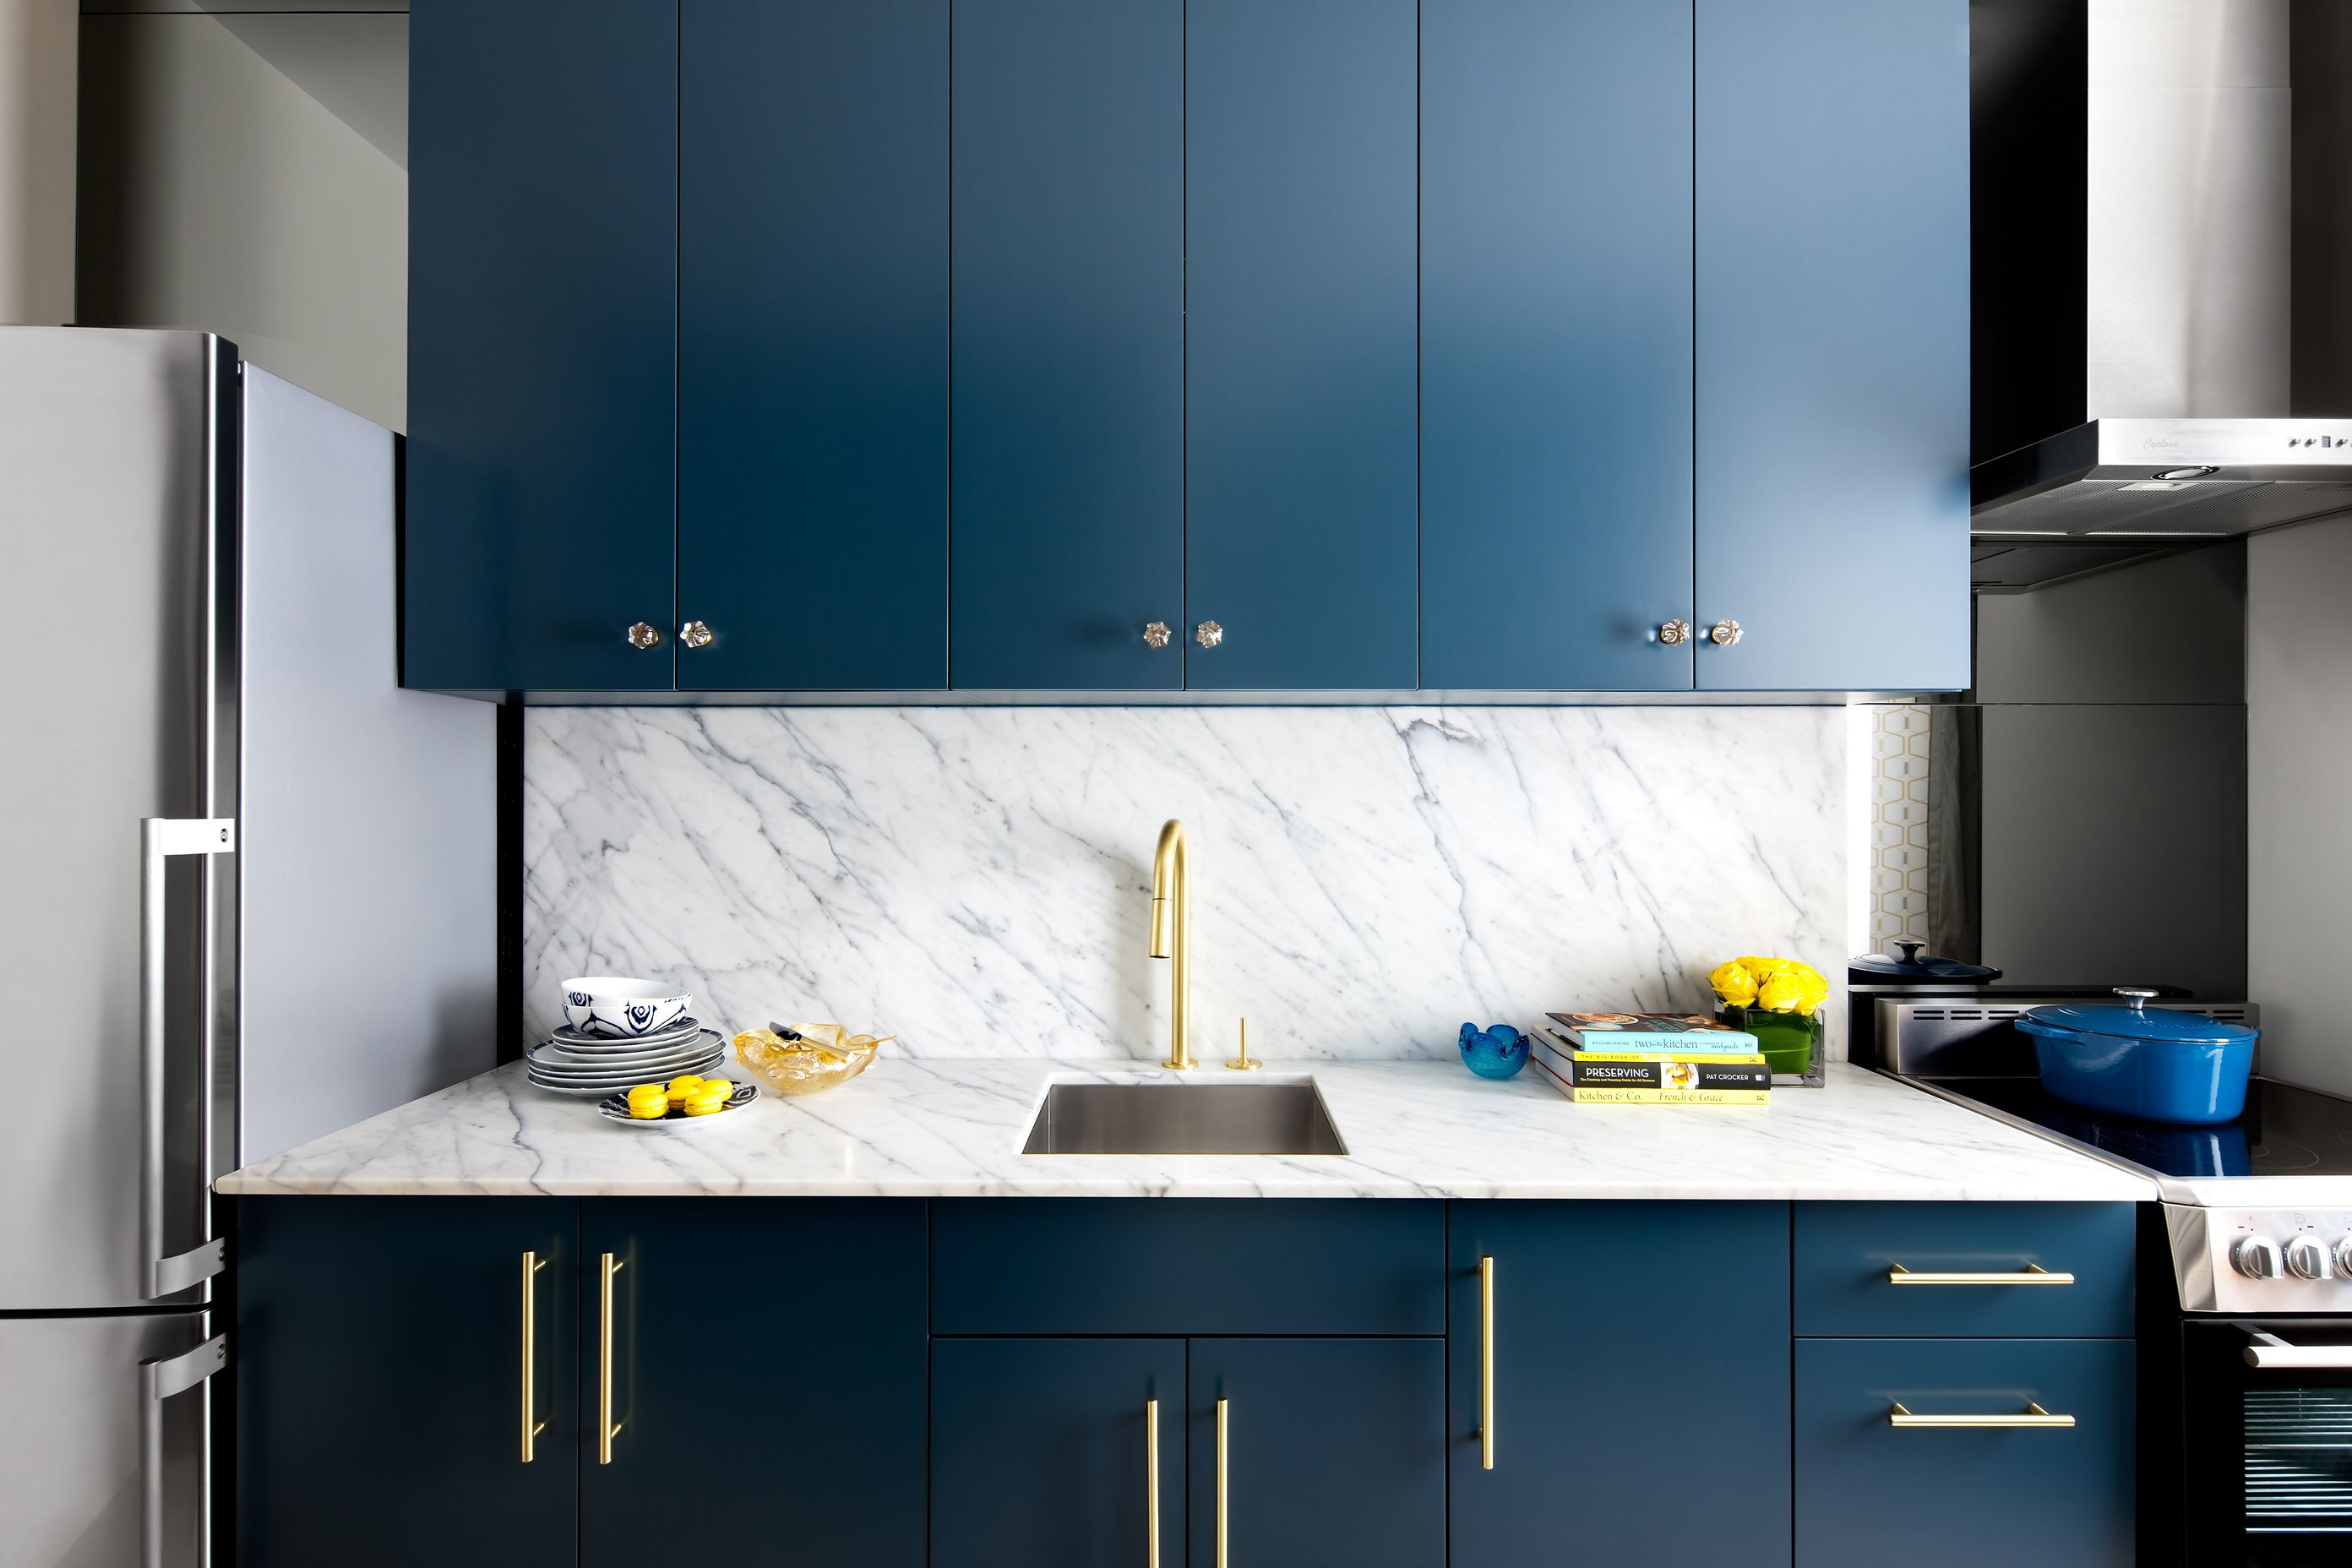 A new kitchen project has been added to our Toronto Interior Design ...